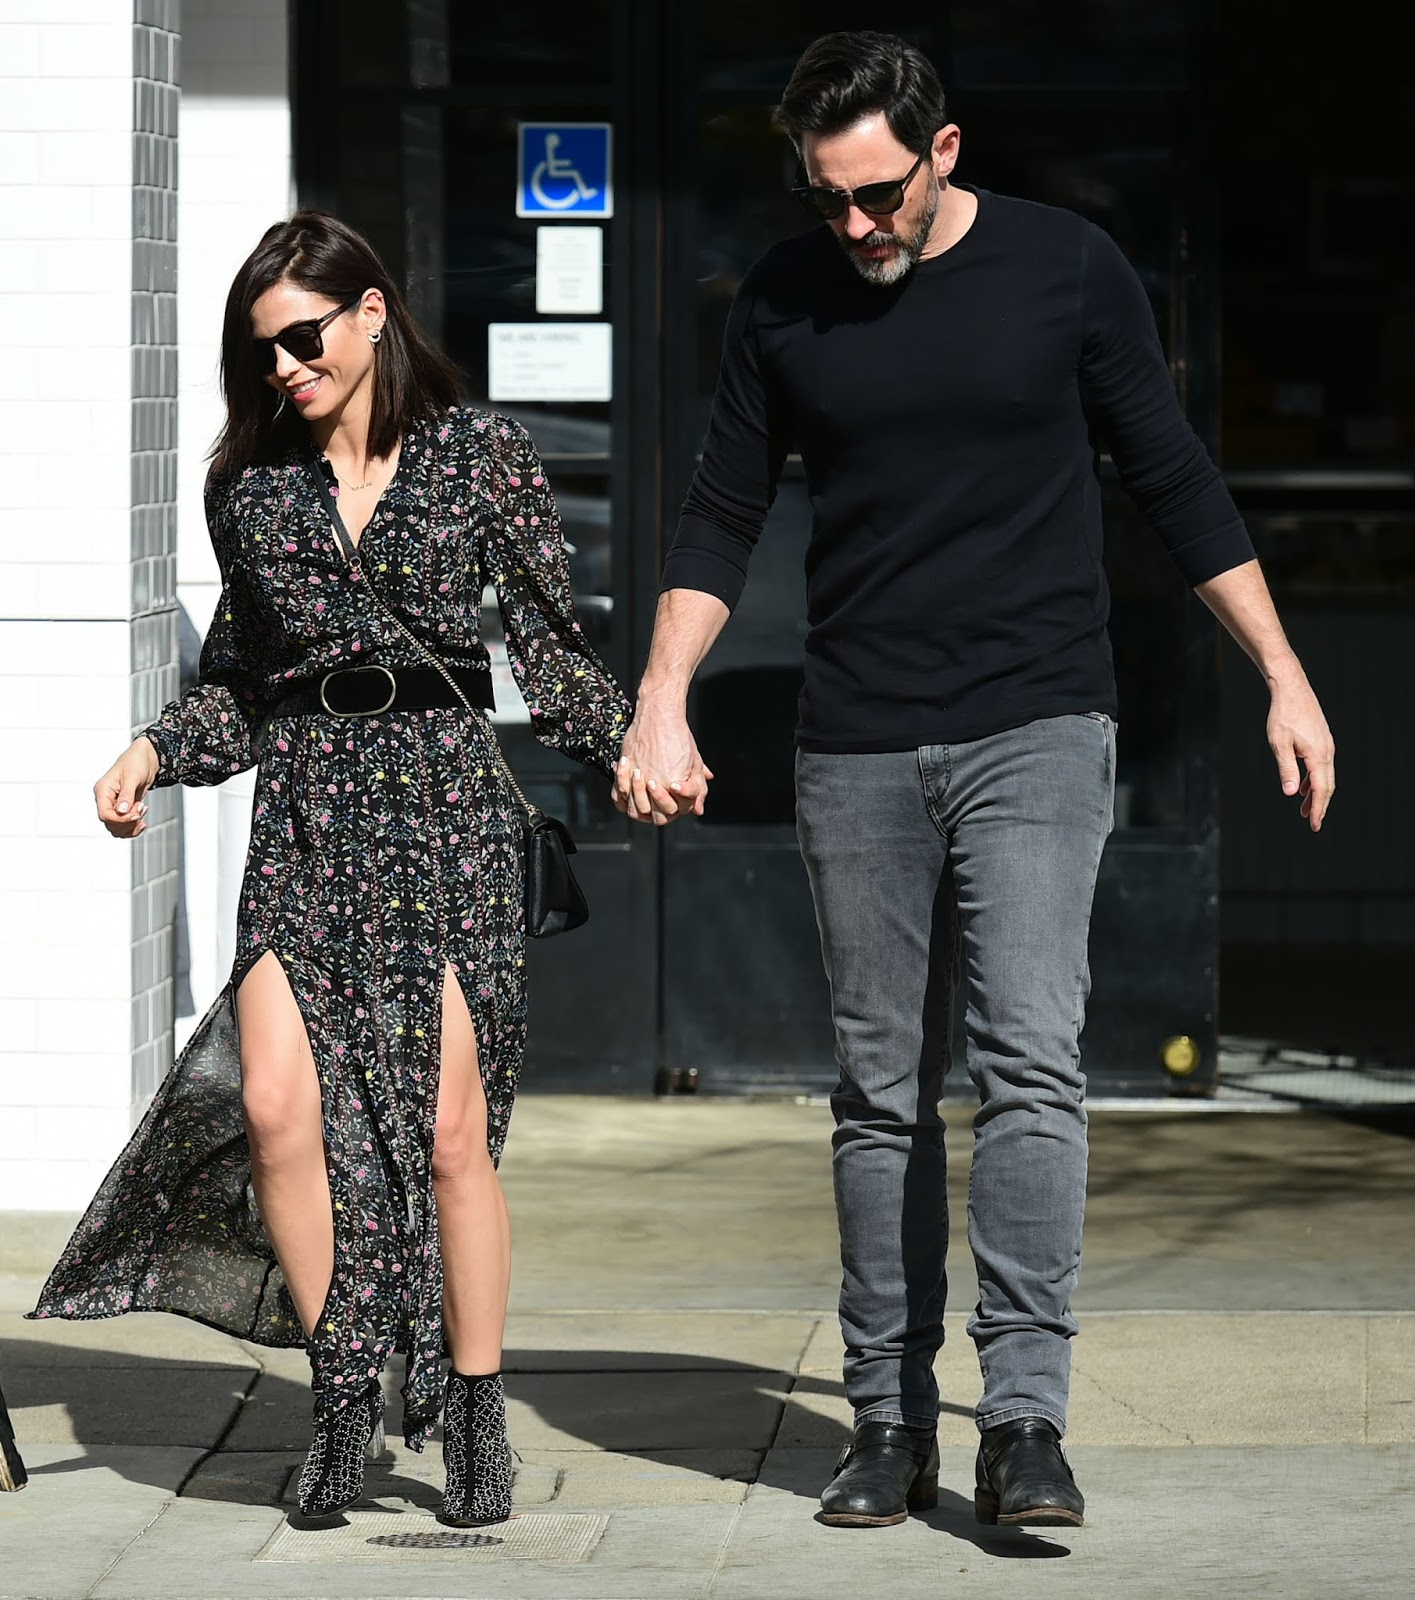 Jenna Dewan - out and about in Los Angeles 01/26/2019